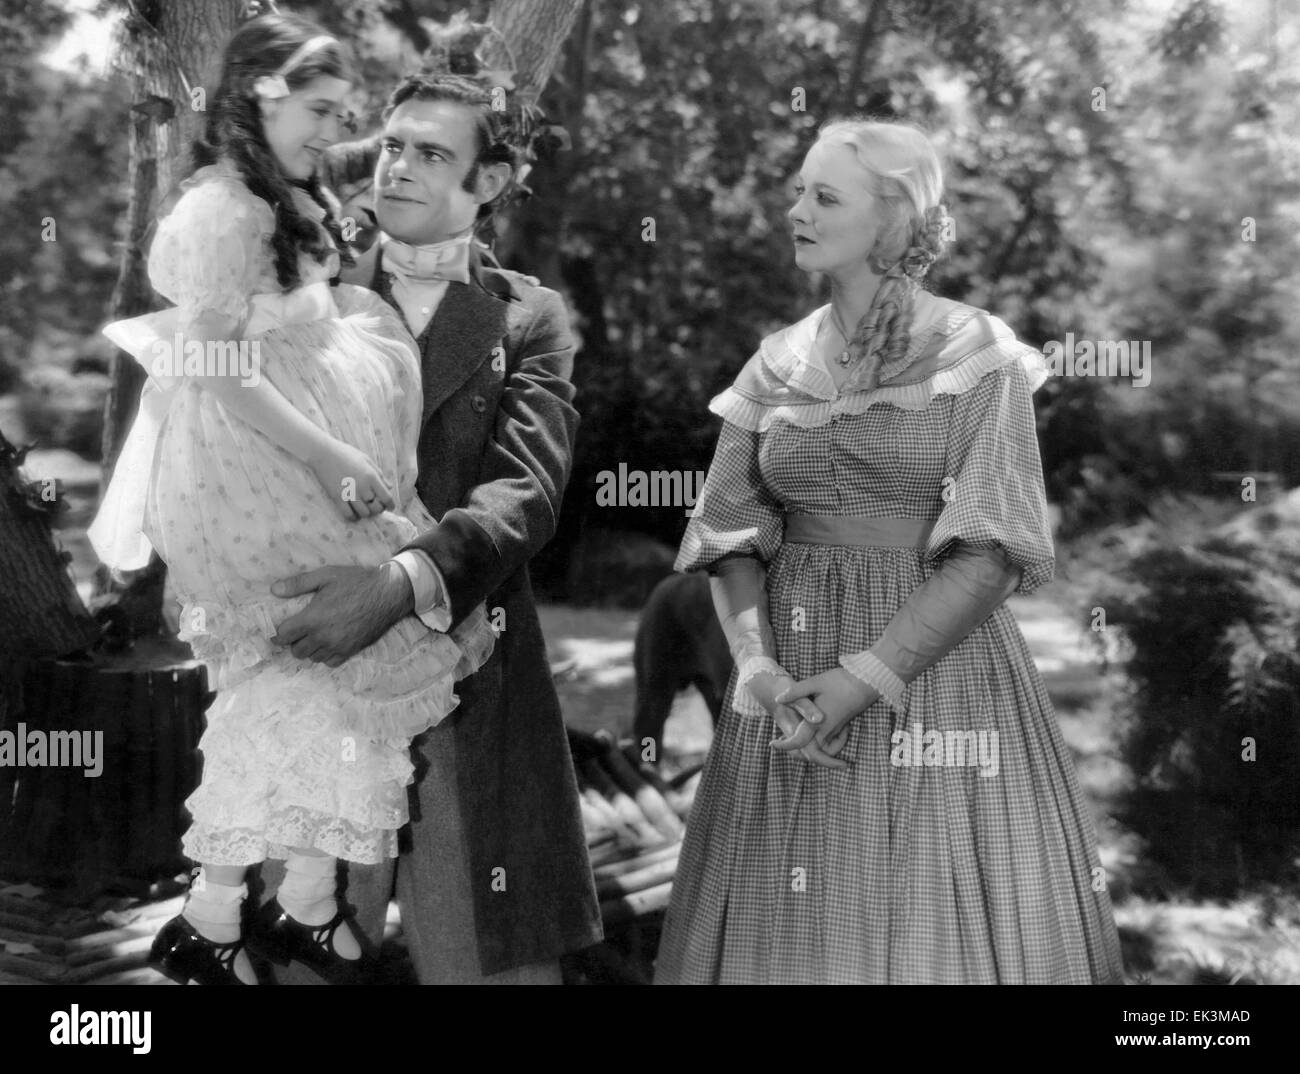 Edith Fellows, Colin Clive, Virginia Bruce, on-set of the Film 'Jane Eyre', 1934 - Stock Image